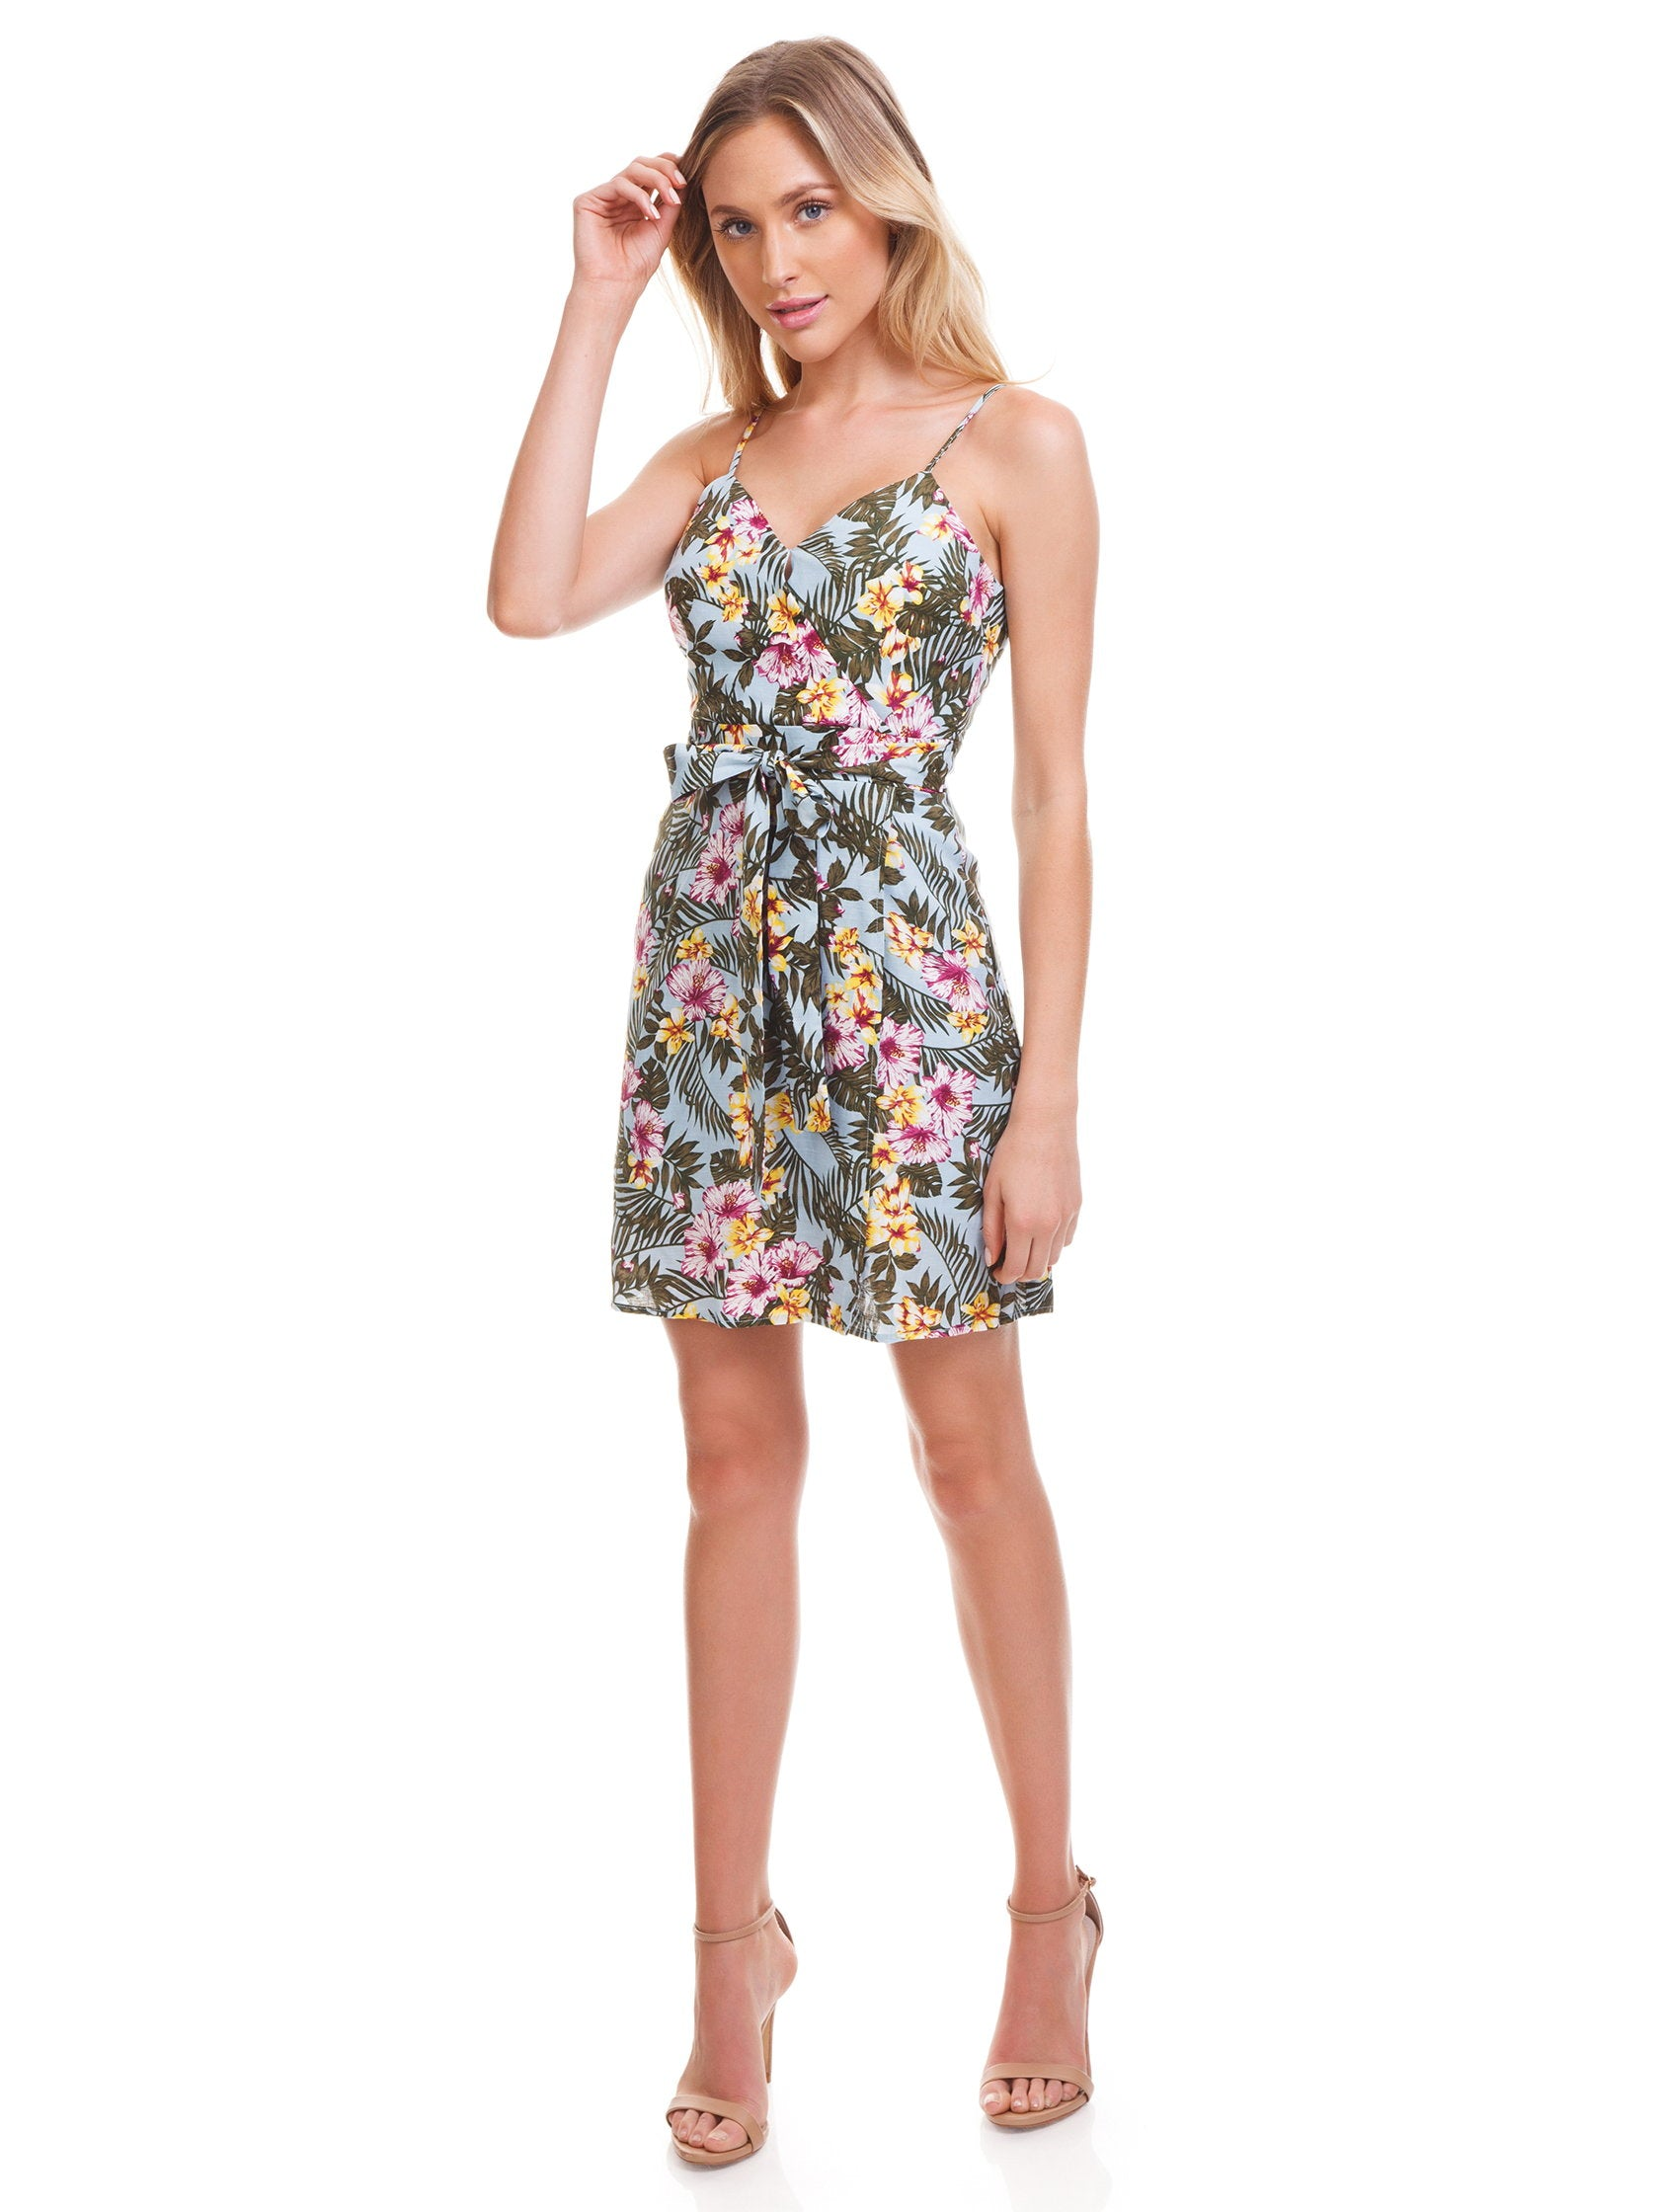 Girl outfit in a dress rental from J.O.A. called Tropical Print Faux Wrap Dress